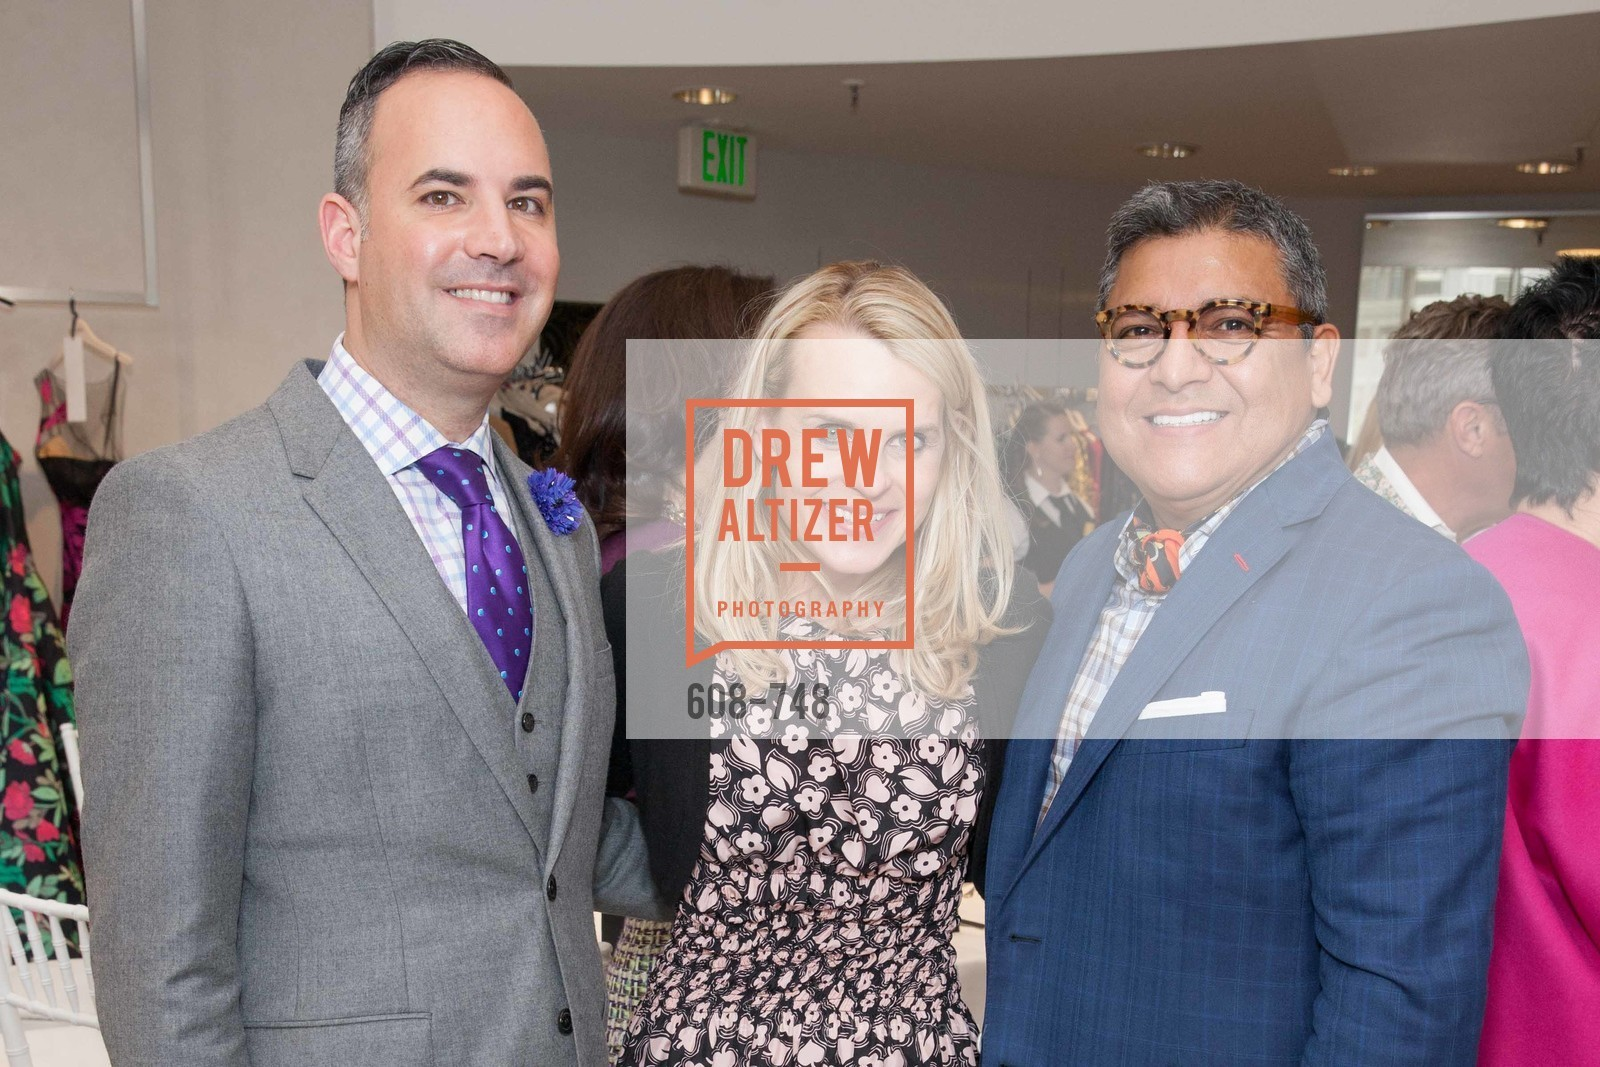 Robert Arnold-Kraft, Jane Mudge, Riccardo Benavides, PETER COPPING Makes Personal Appearance at SAKS FIFTH AVENUE, US, May 21st, 2015,Drew Altizer, Drew Altizer Photography, full-service agency, private events, San Francisco photographer, photographer california